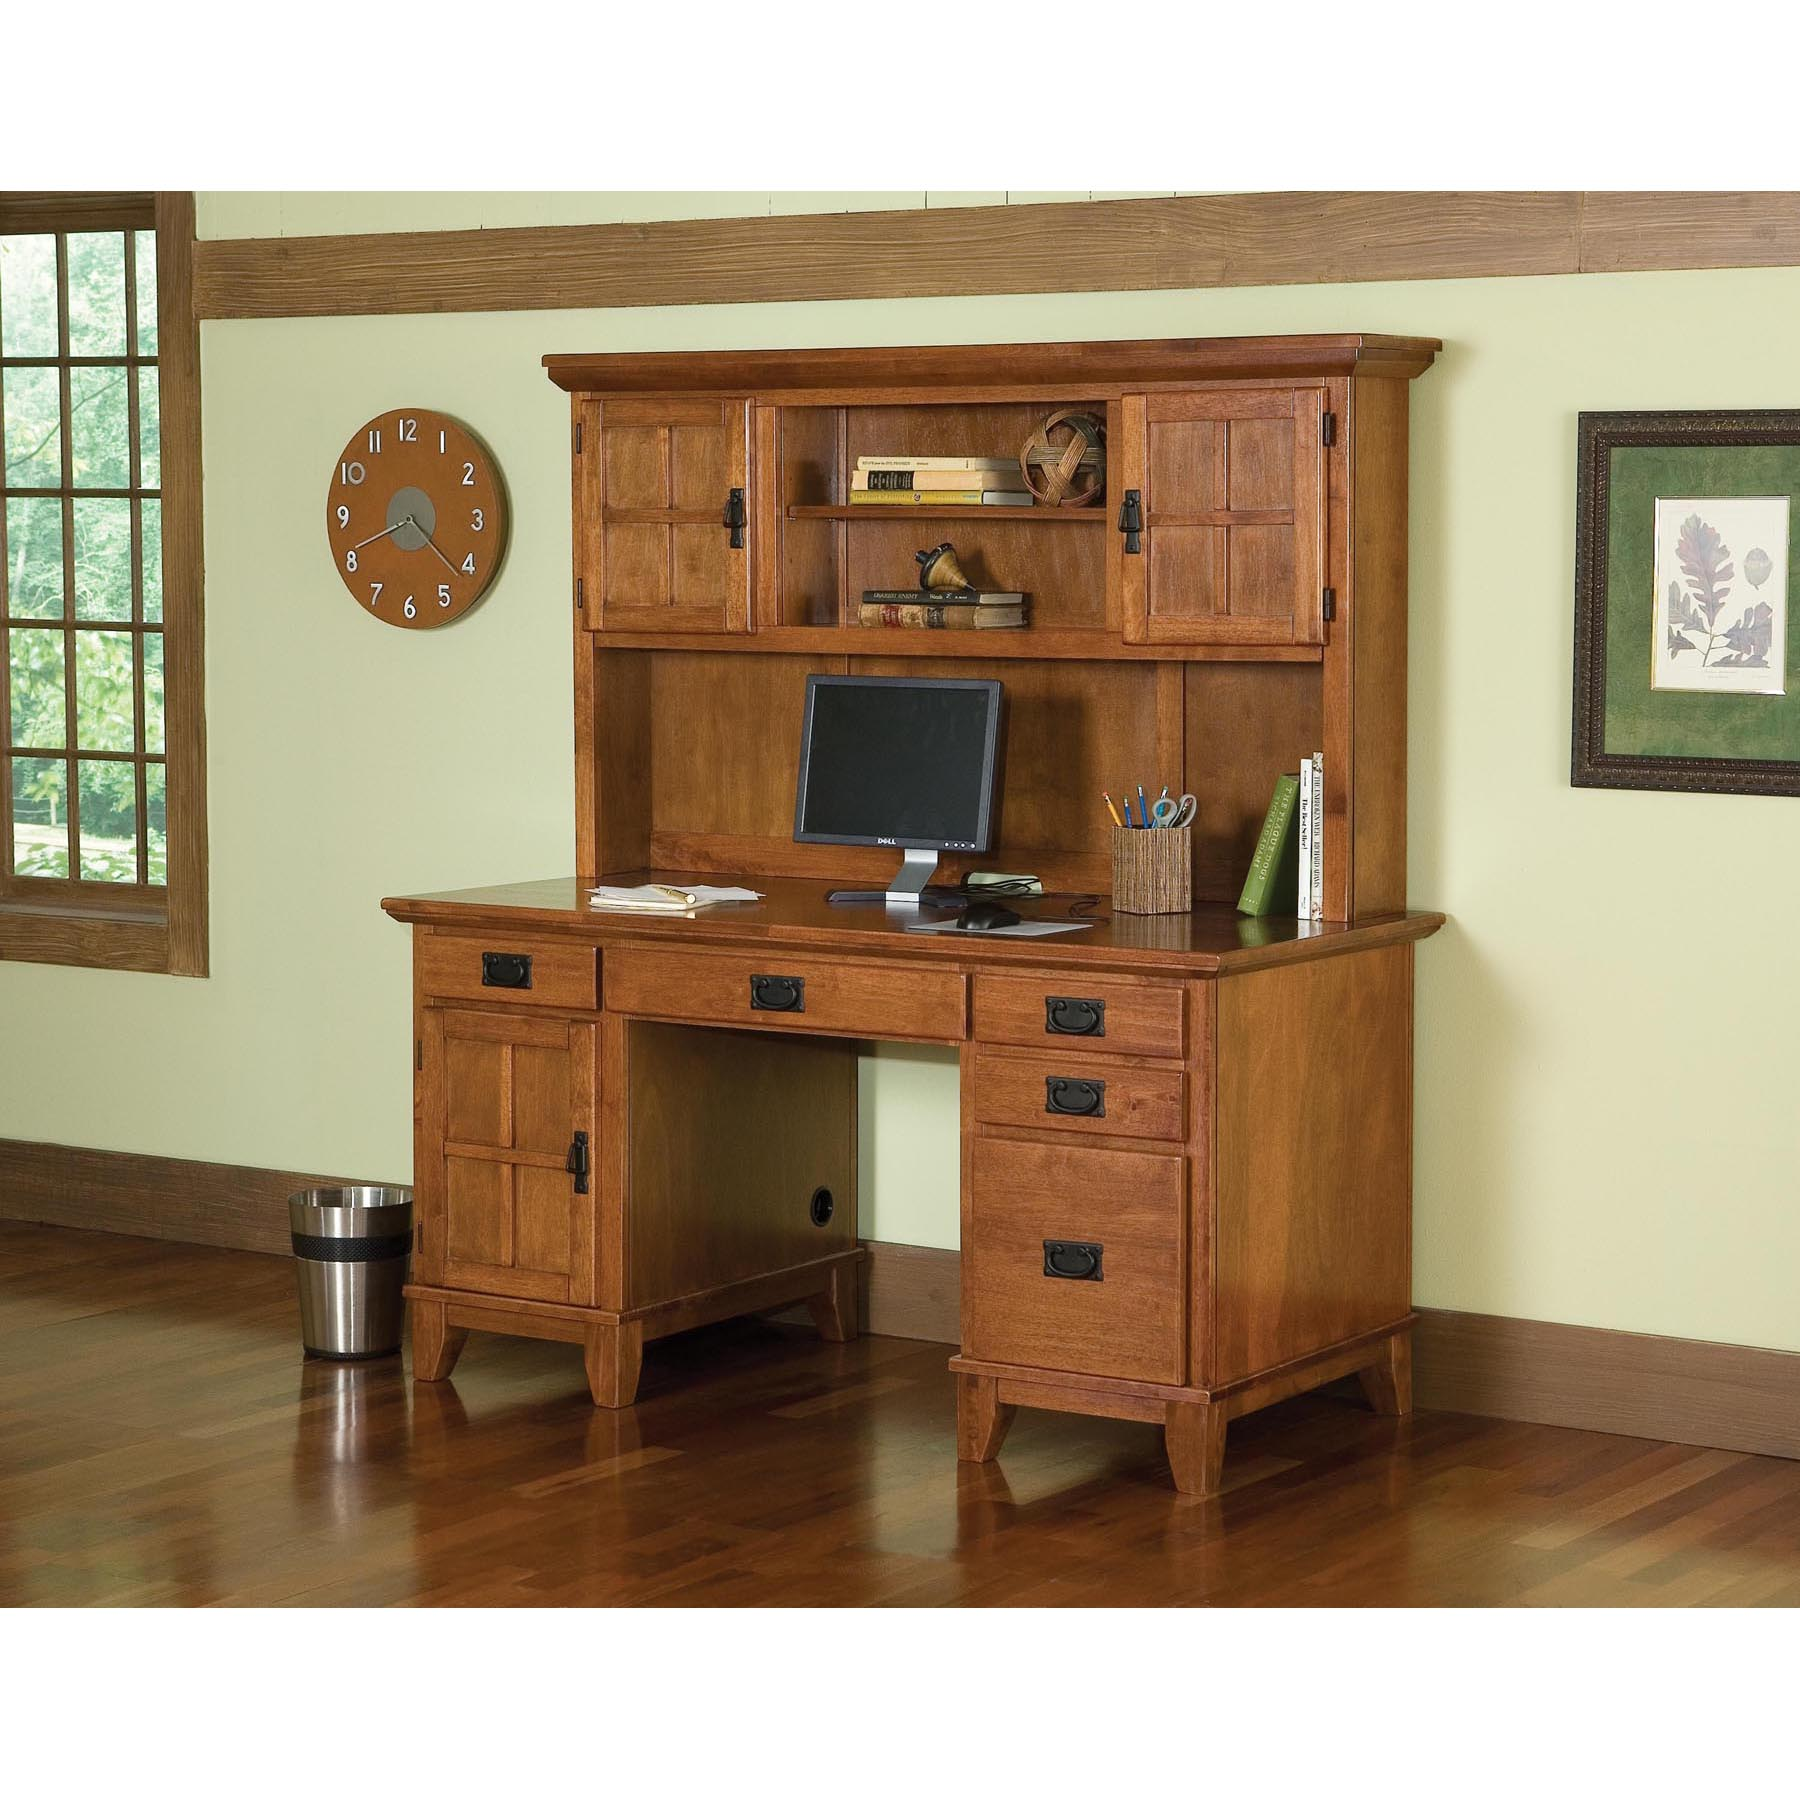 Buy Hutch Desk Online at Overstock | Our Best Home Office ...